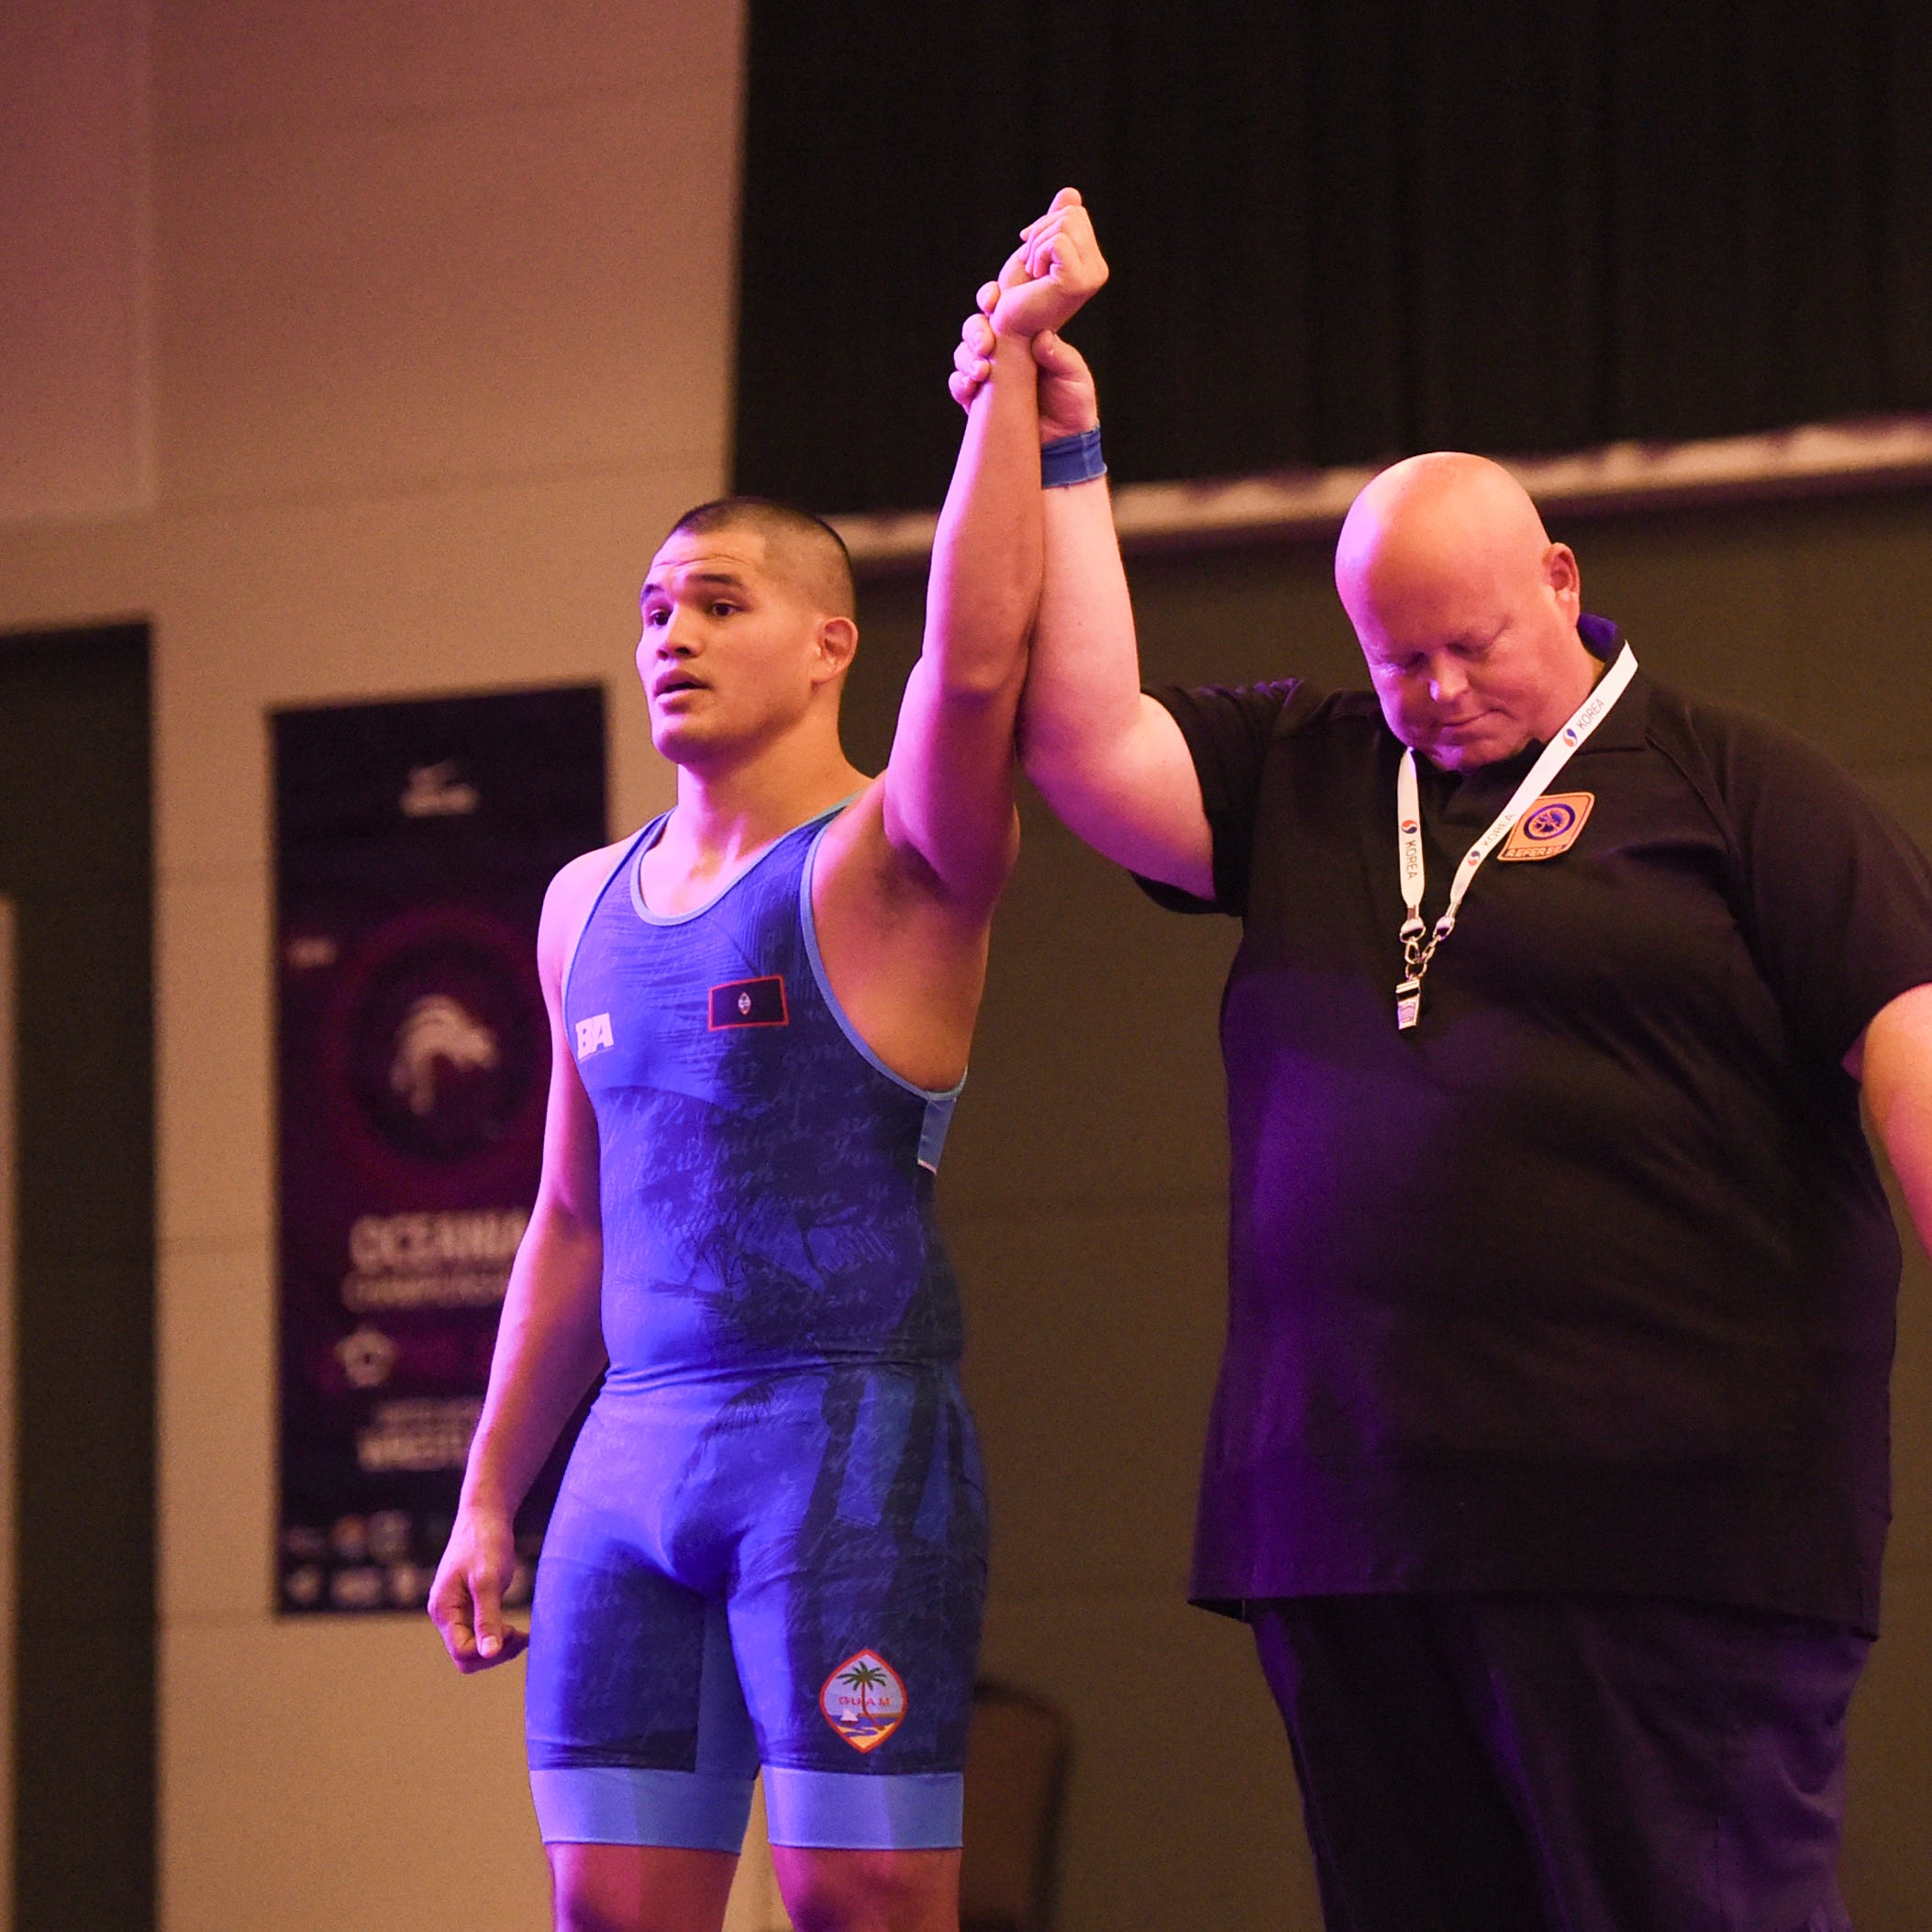 Mike Shinohara takes Greco gold at Oceania Wrestling